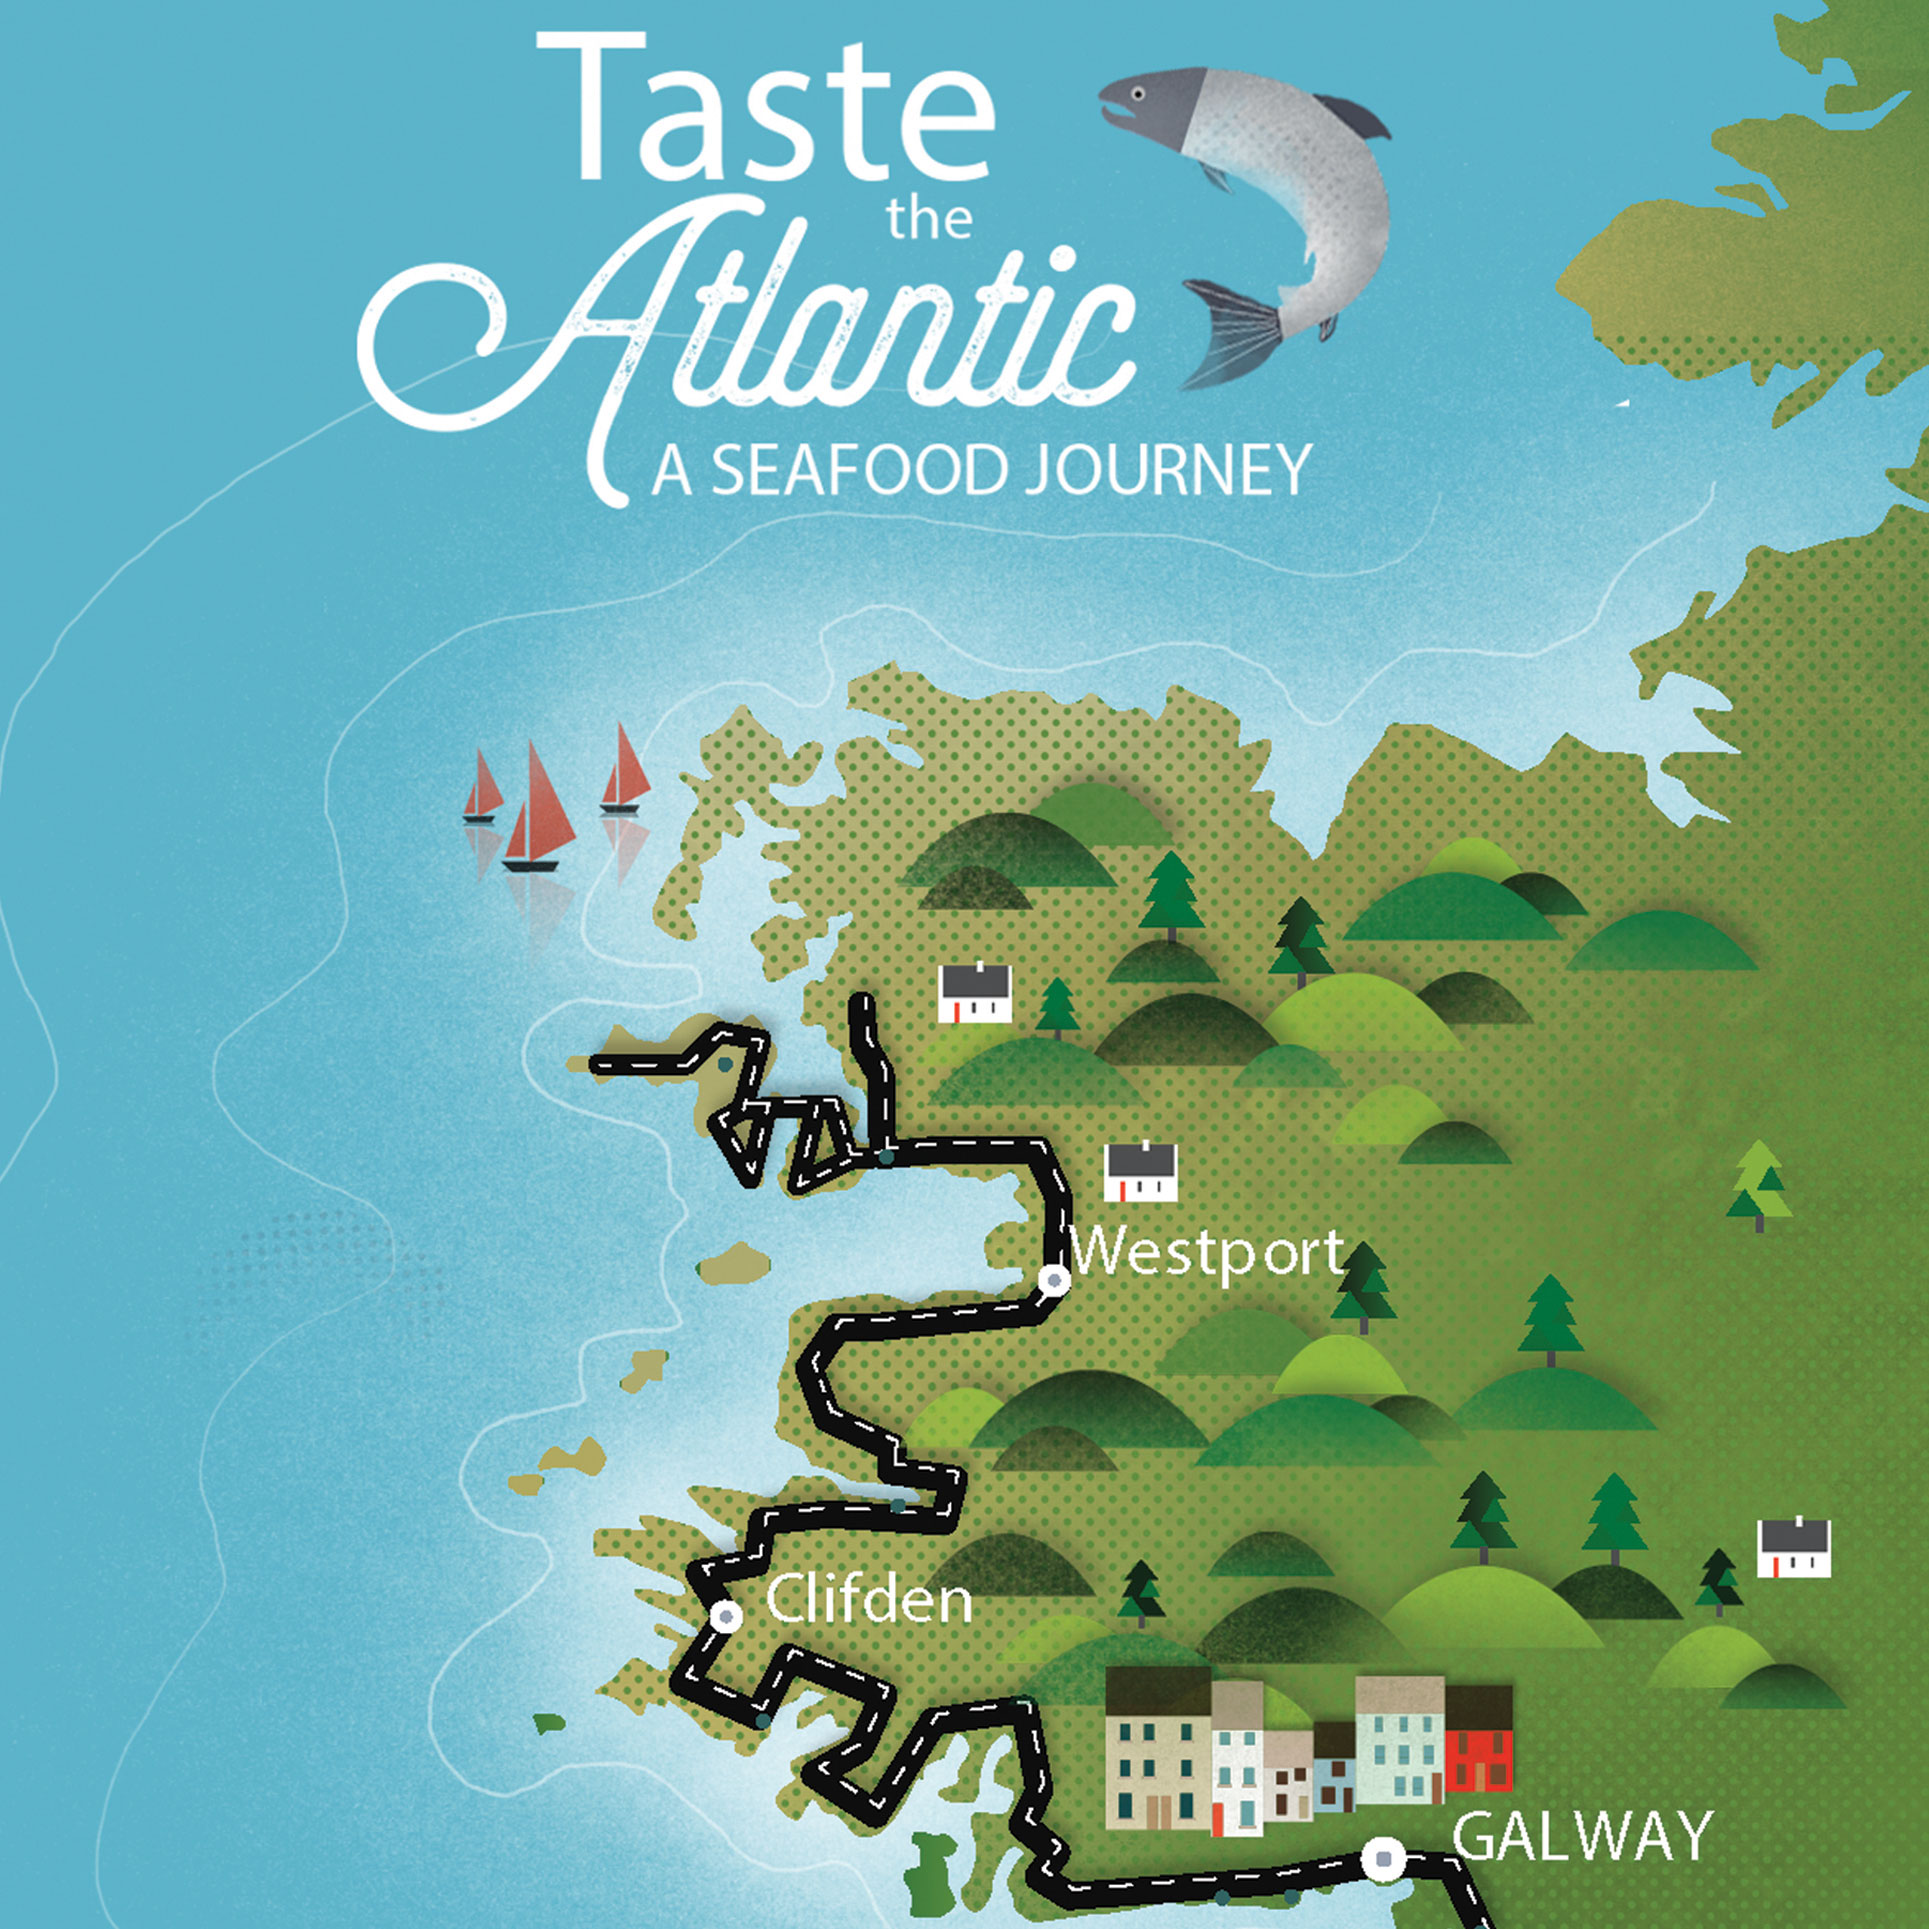 Reddin Designs taste the atlantic map illustration